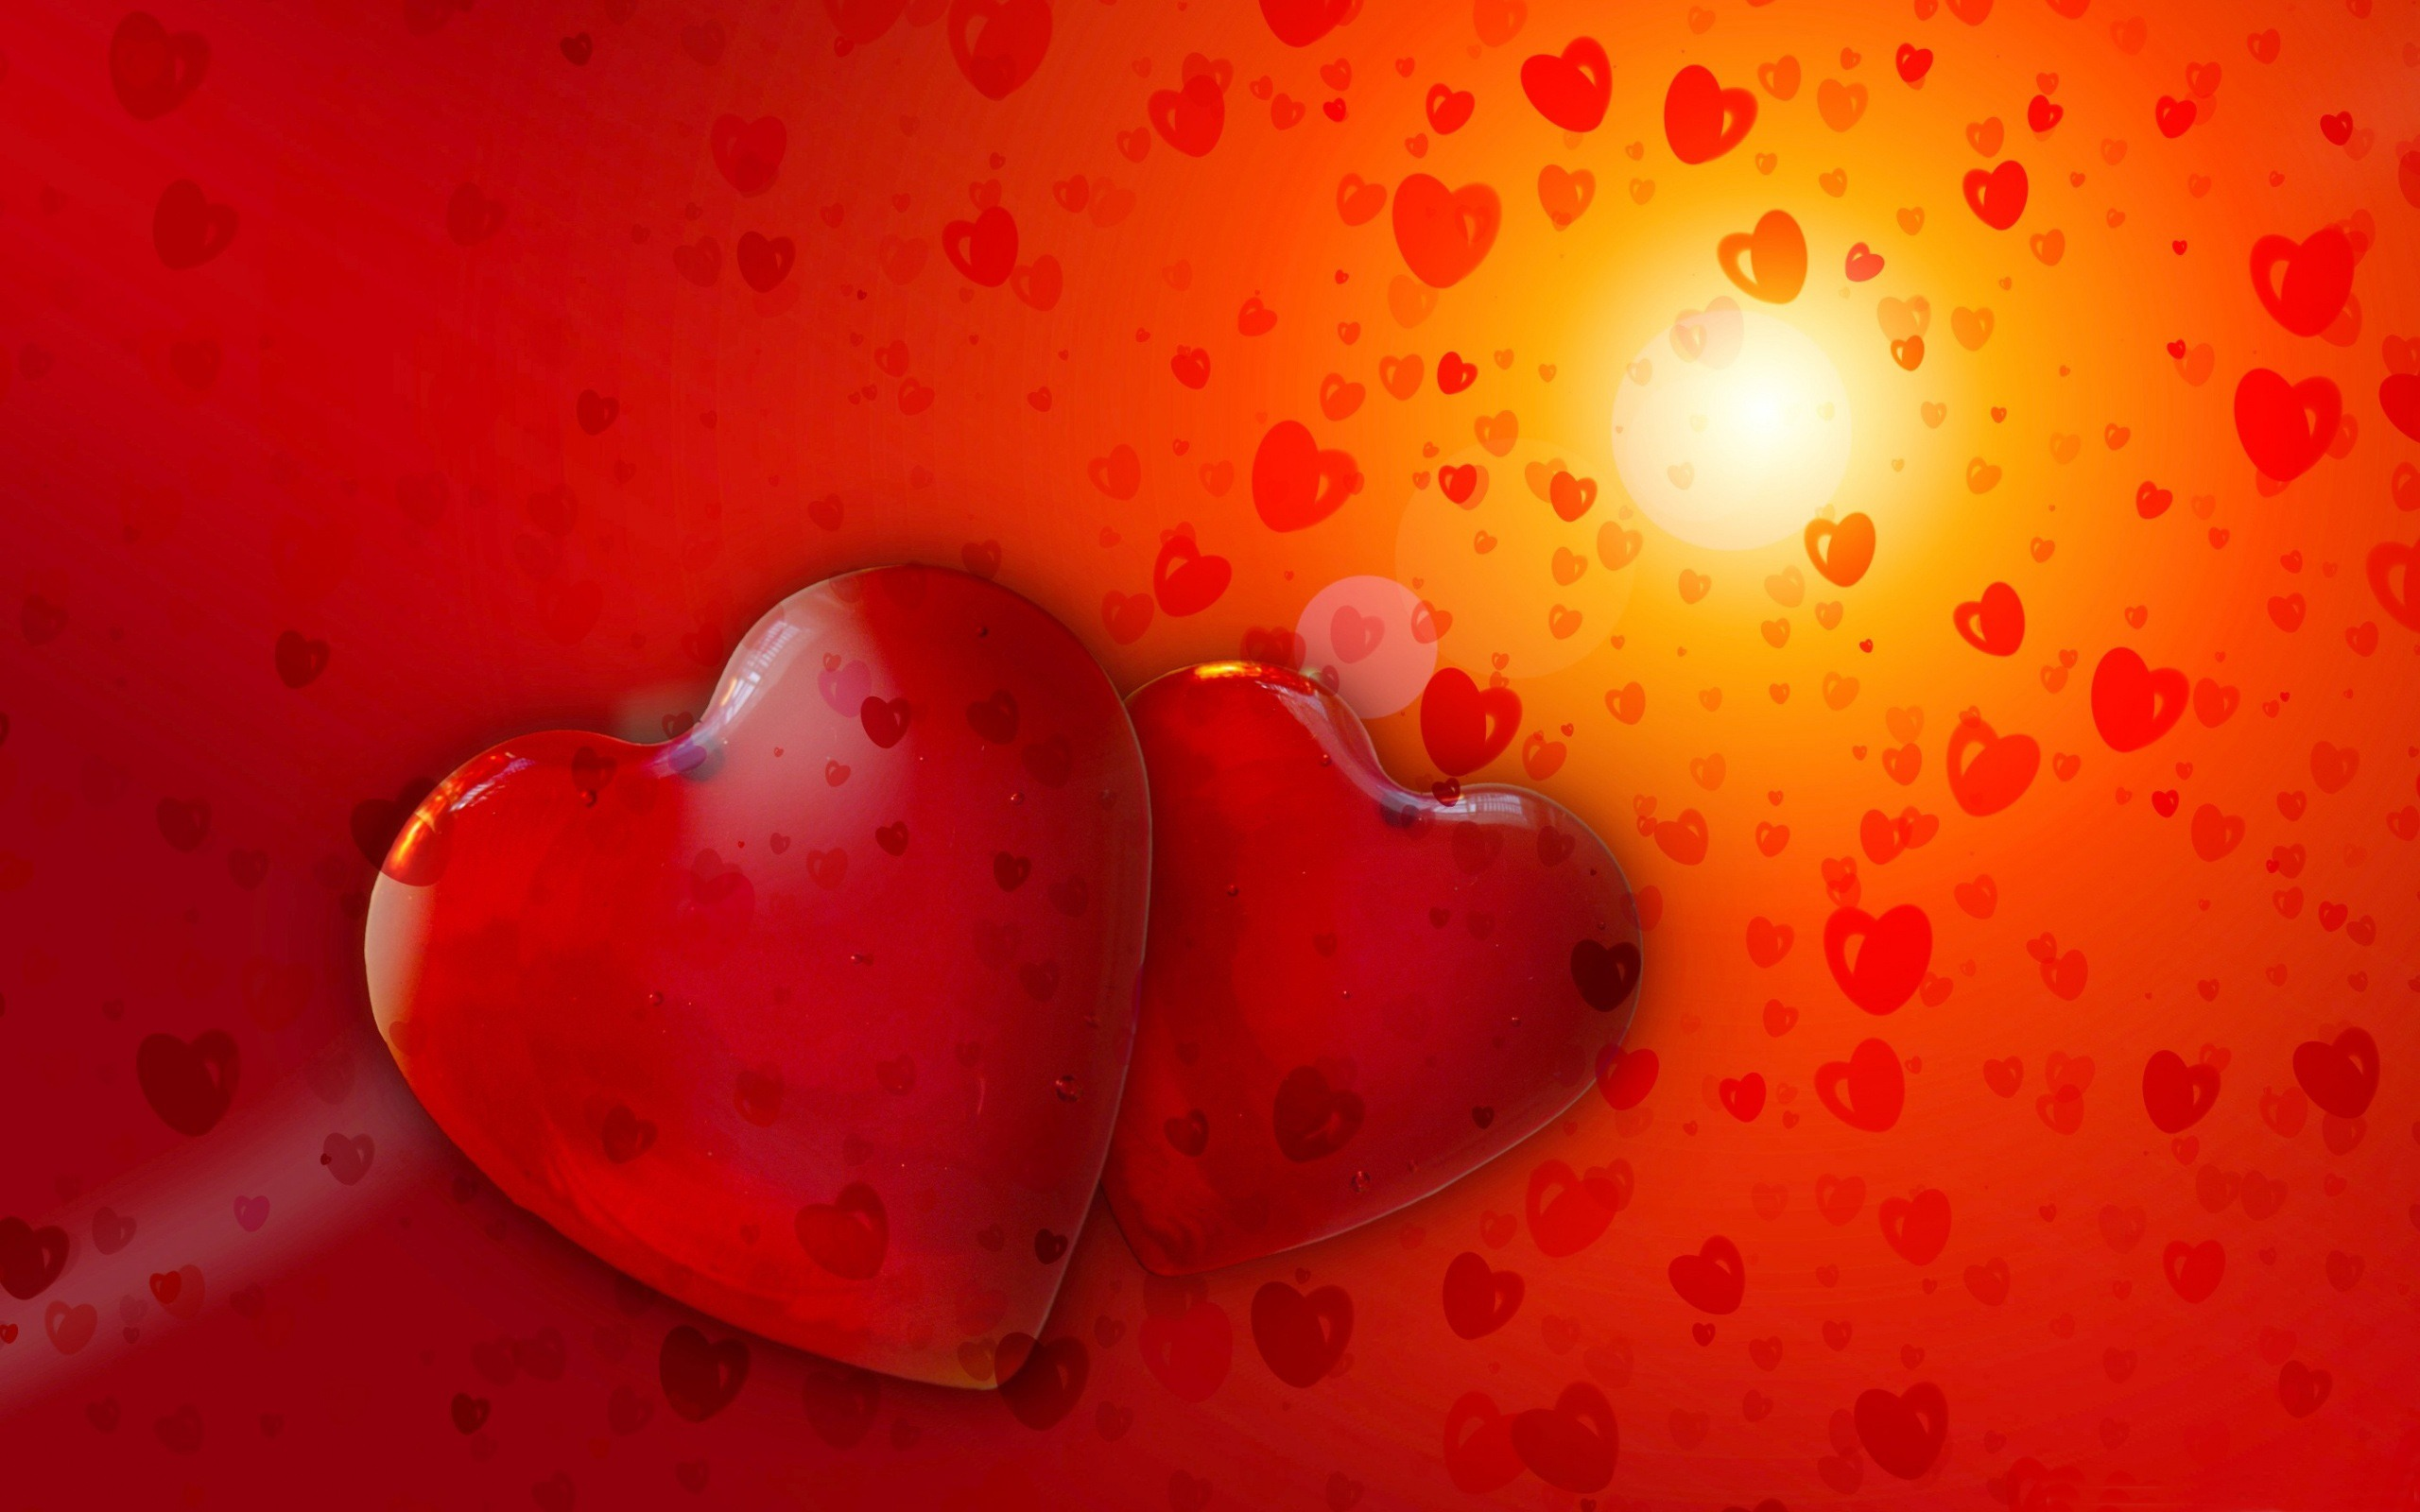 Love Red Heart HD Wallpaper